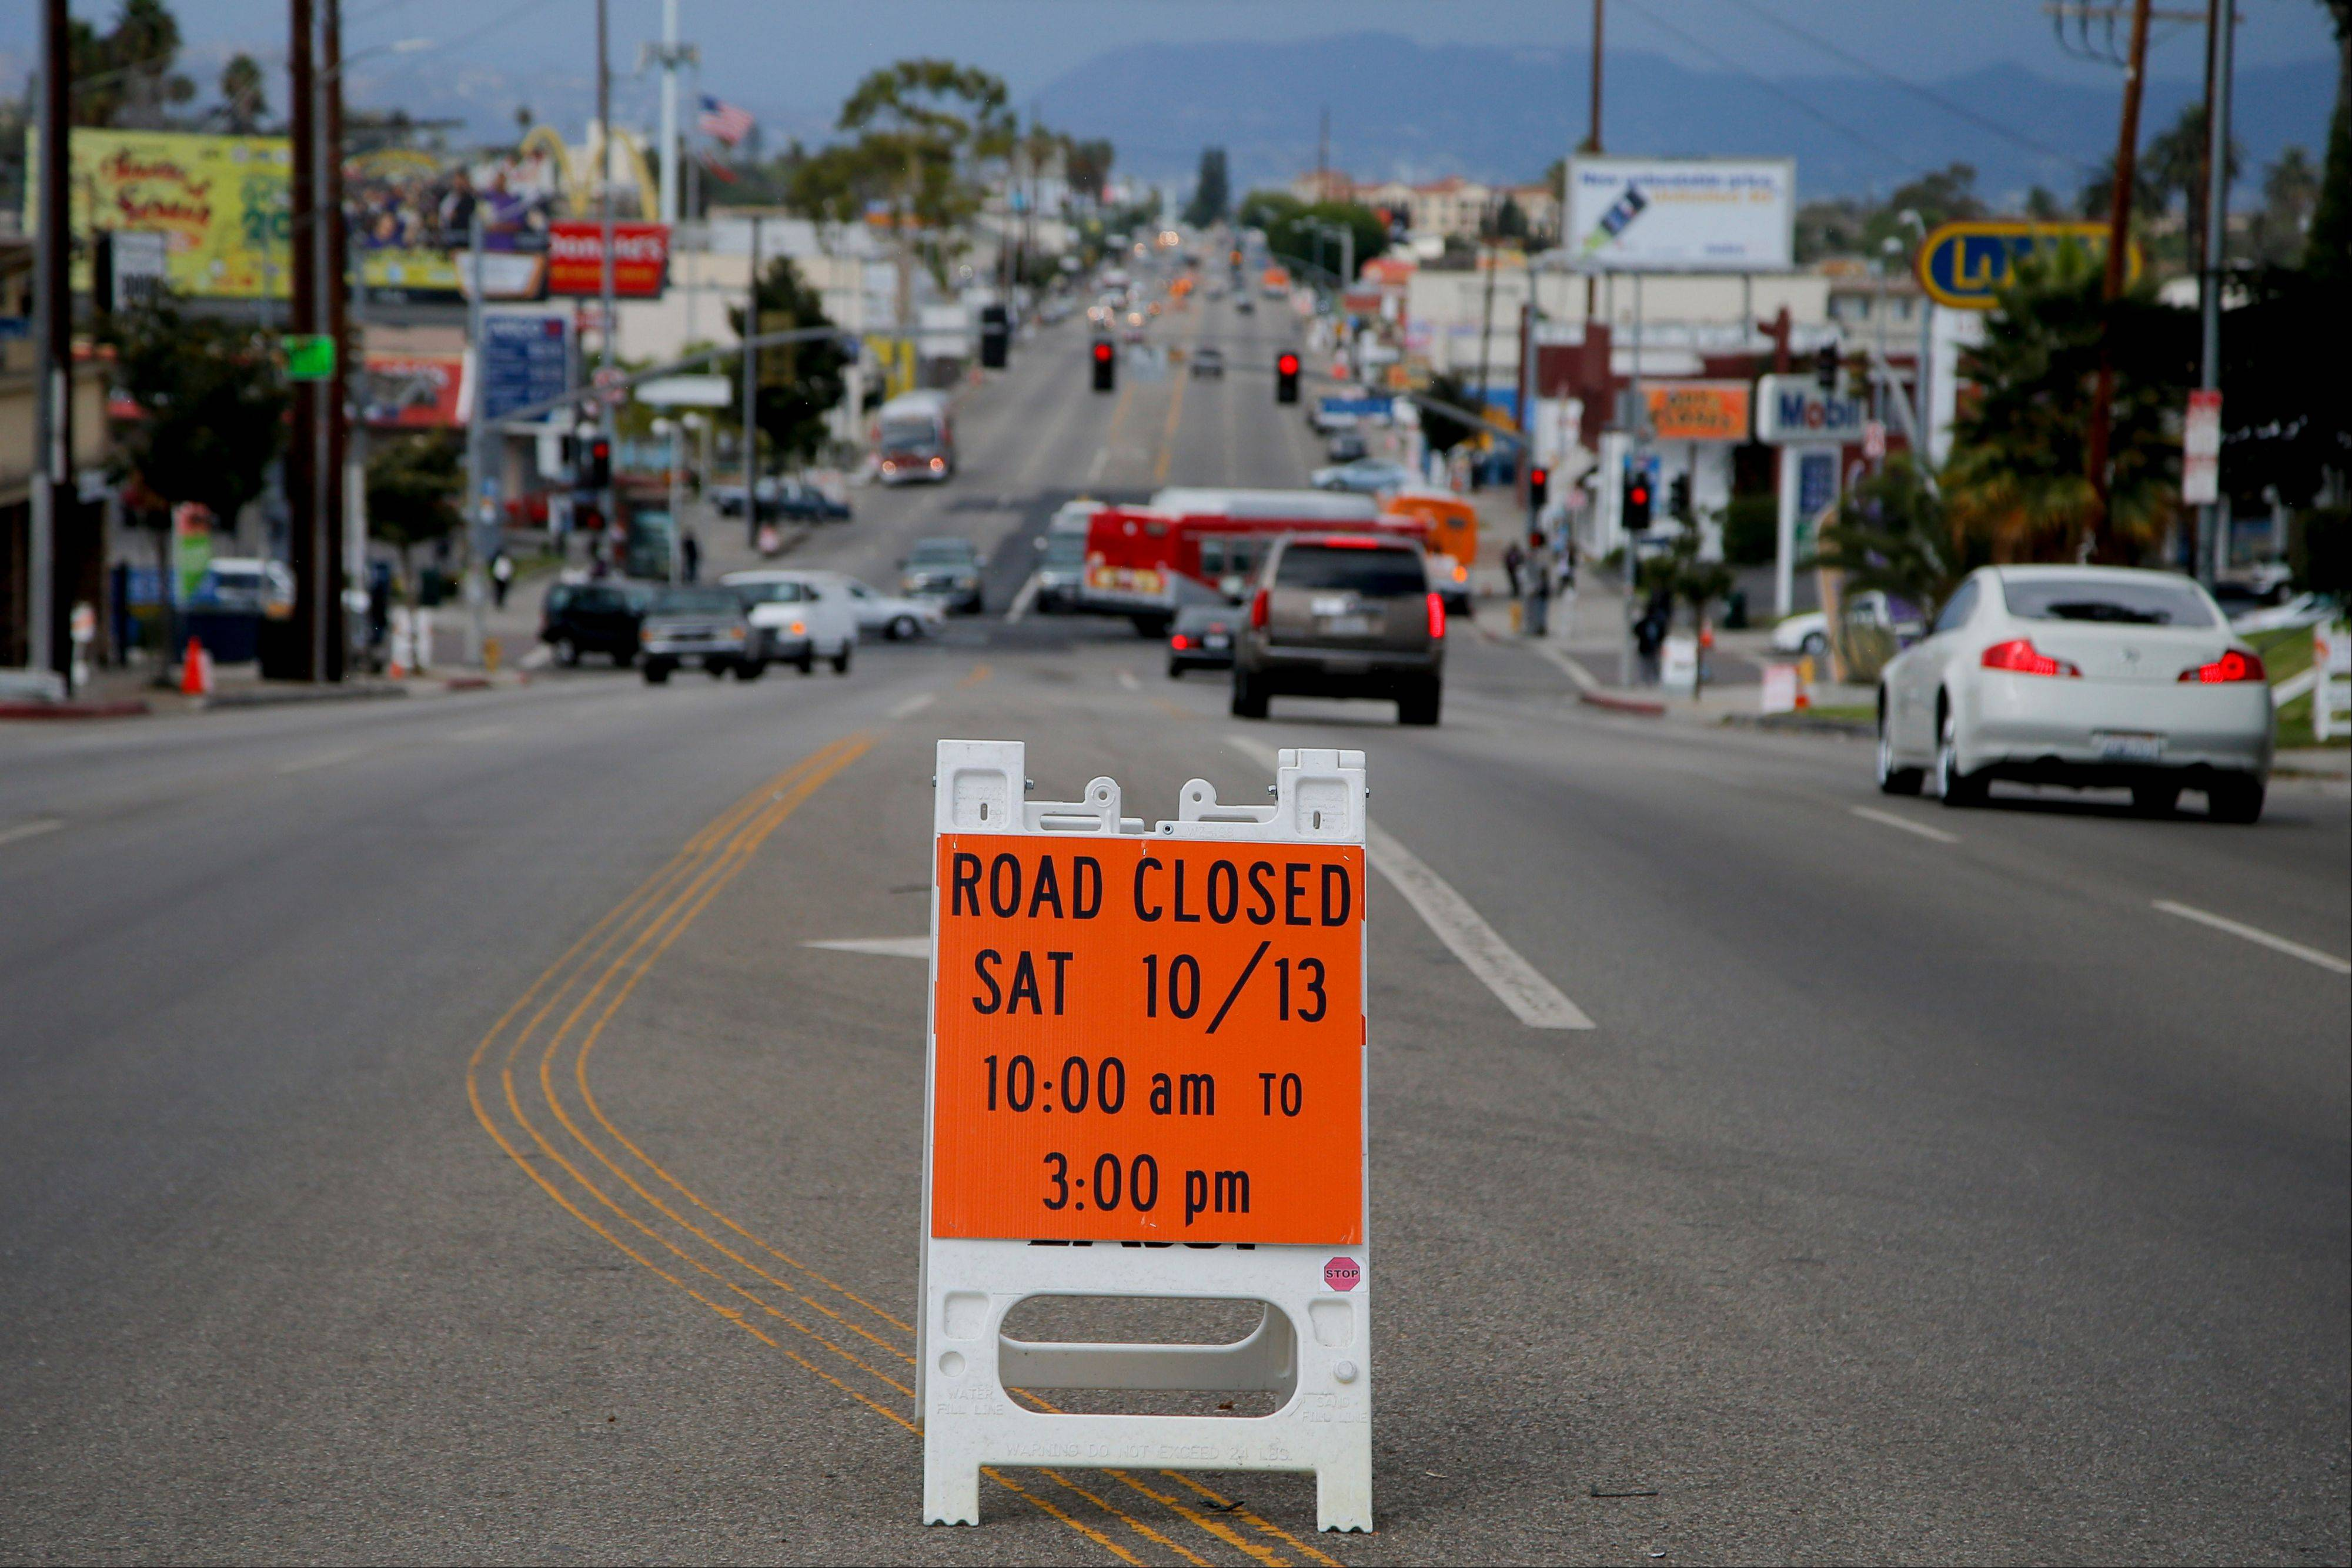 A sign advising the street closure on Crenshaw Boulevard prior to the transfer of the space shuttle Endeavour in Inglewood, Calif.